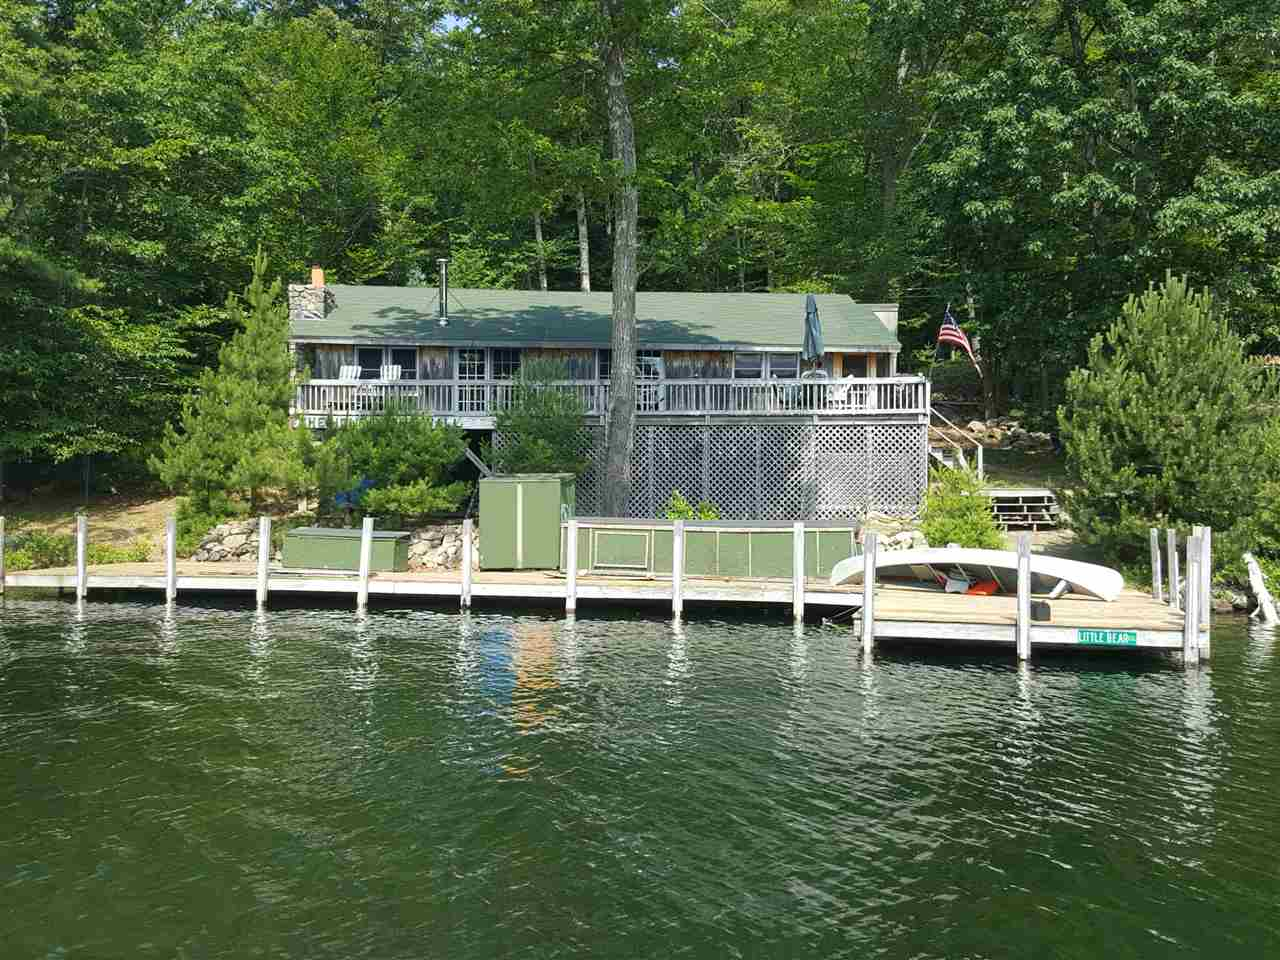 Tuftonboro NH Lake Winnipesaukee waterfront home for sale